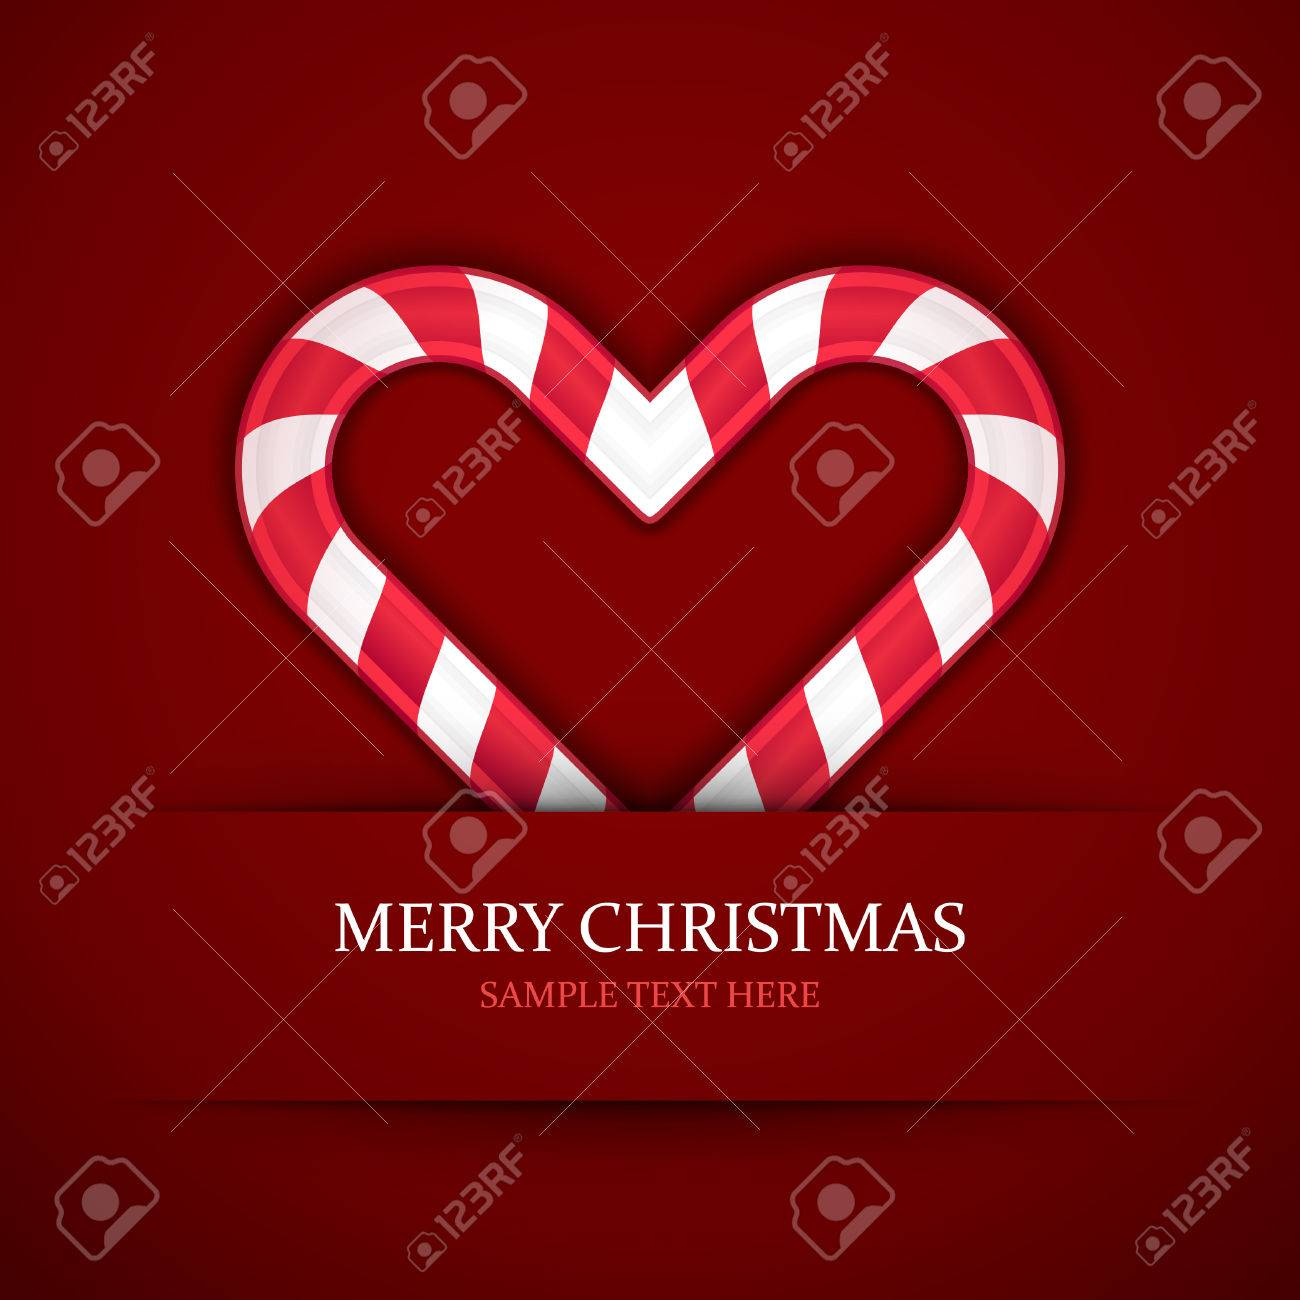 Christmas Candy Heart Vector Background Christmas Card Or Invitation